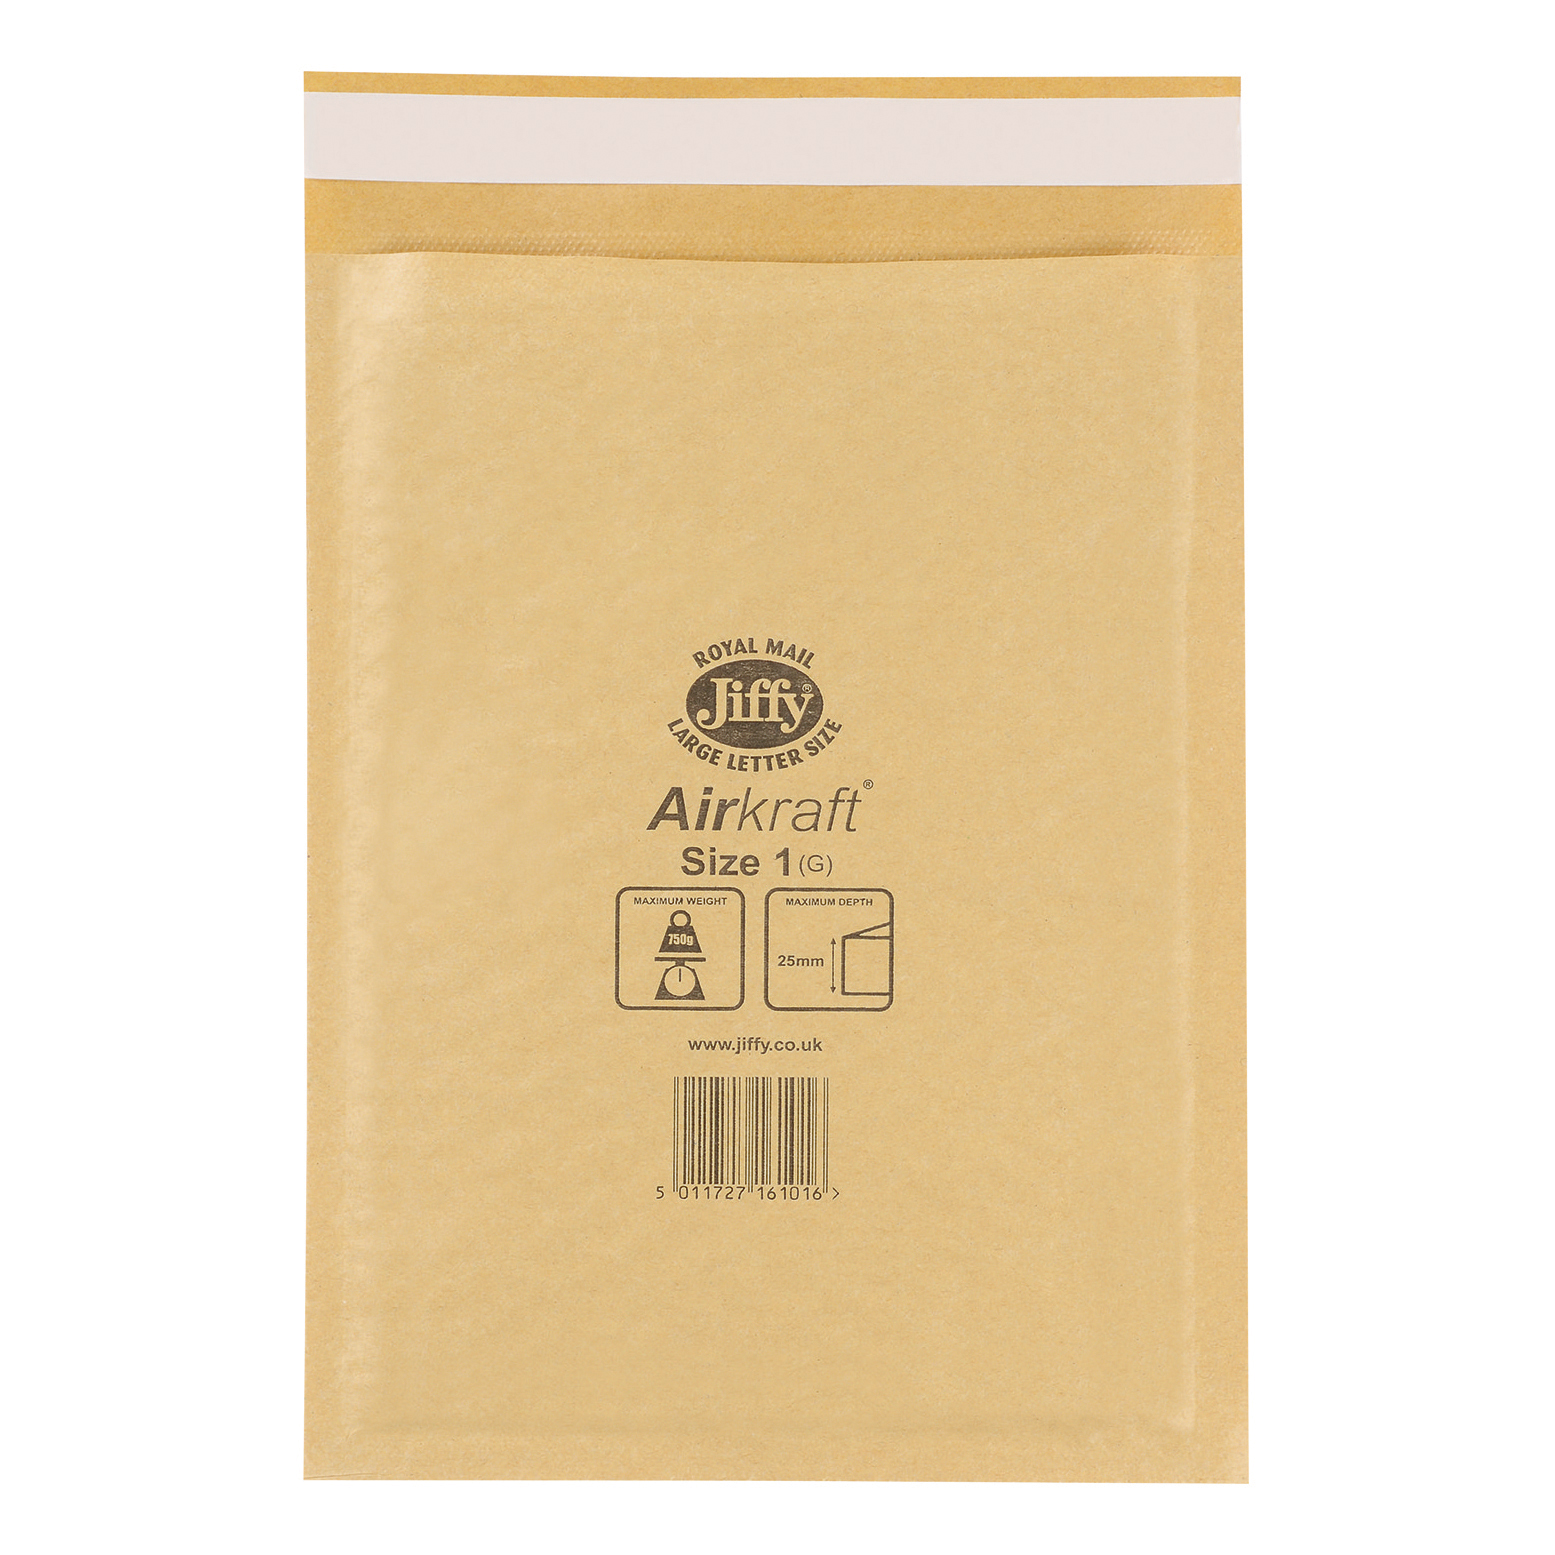 Padded Bags & Envelopes Jiffy Airkraft Bubble Bag Envelopes Size 1 170x245mm Gold Ref JL-GO-1 Pack 100